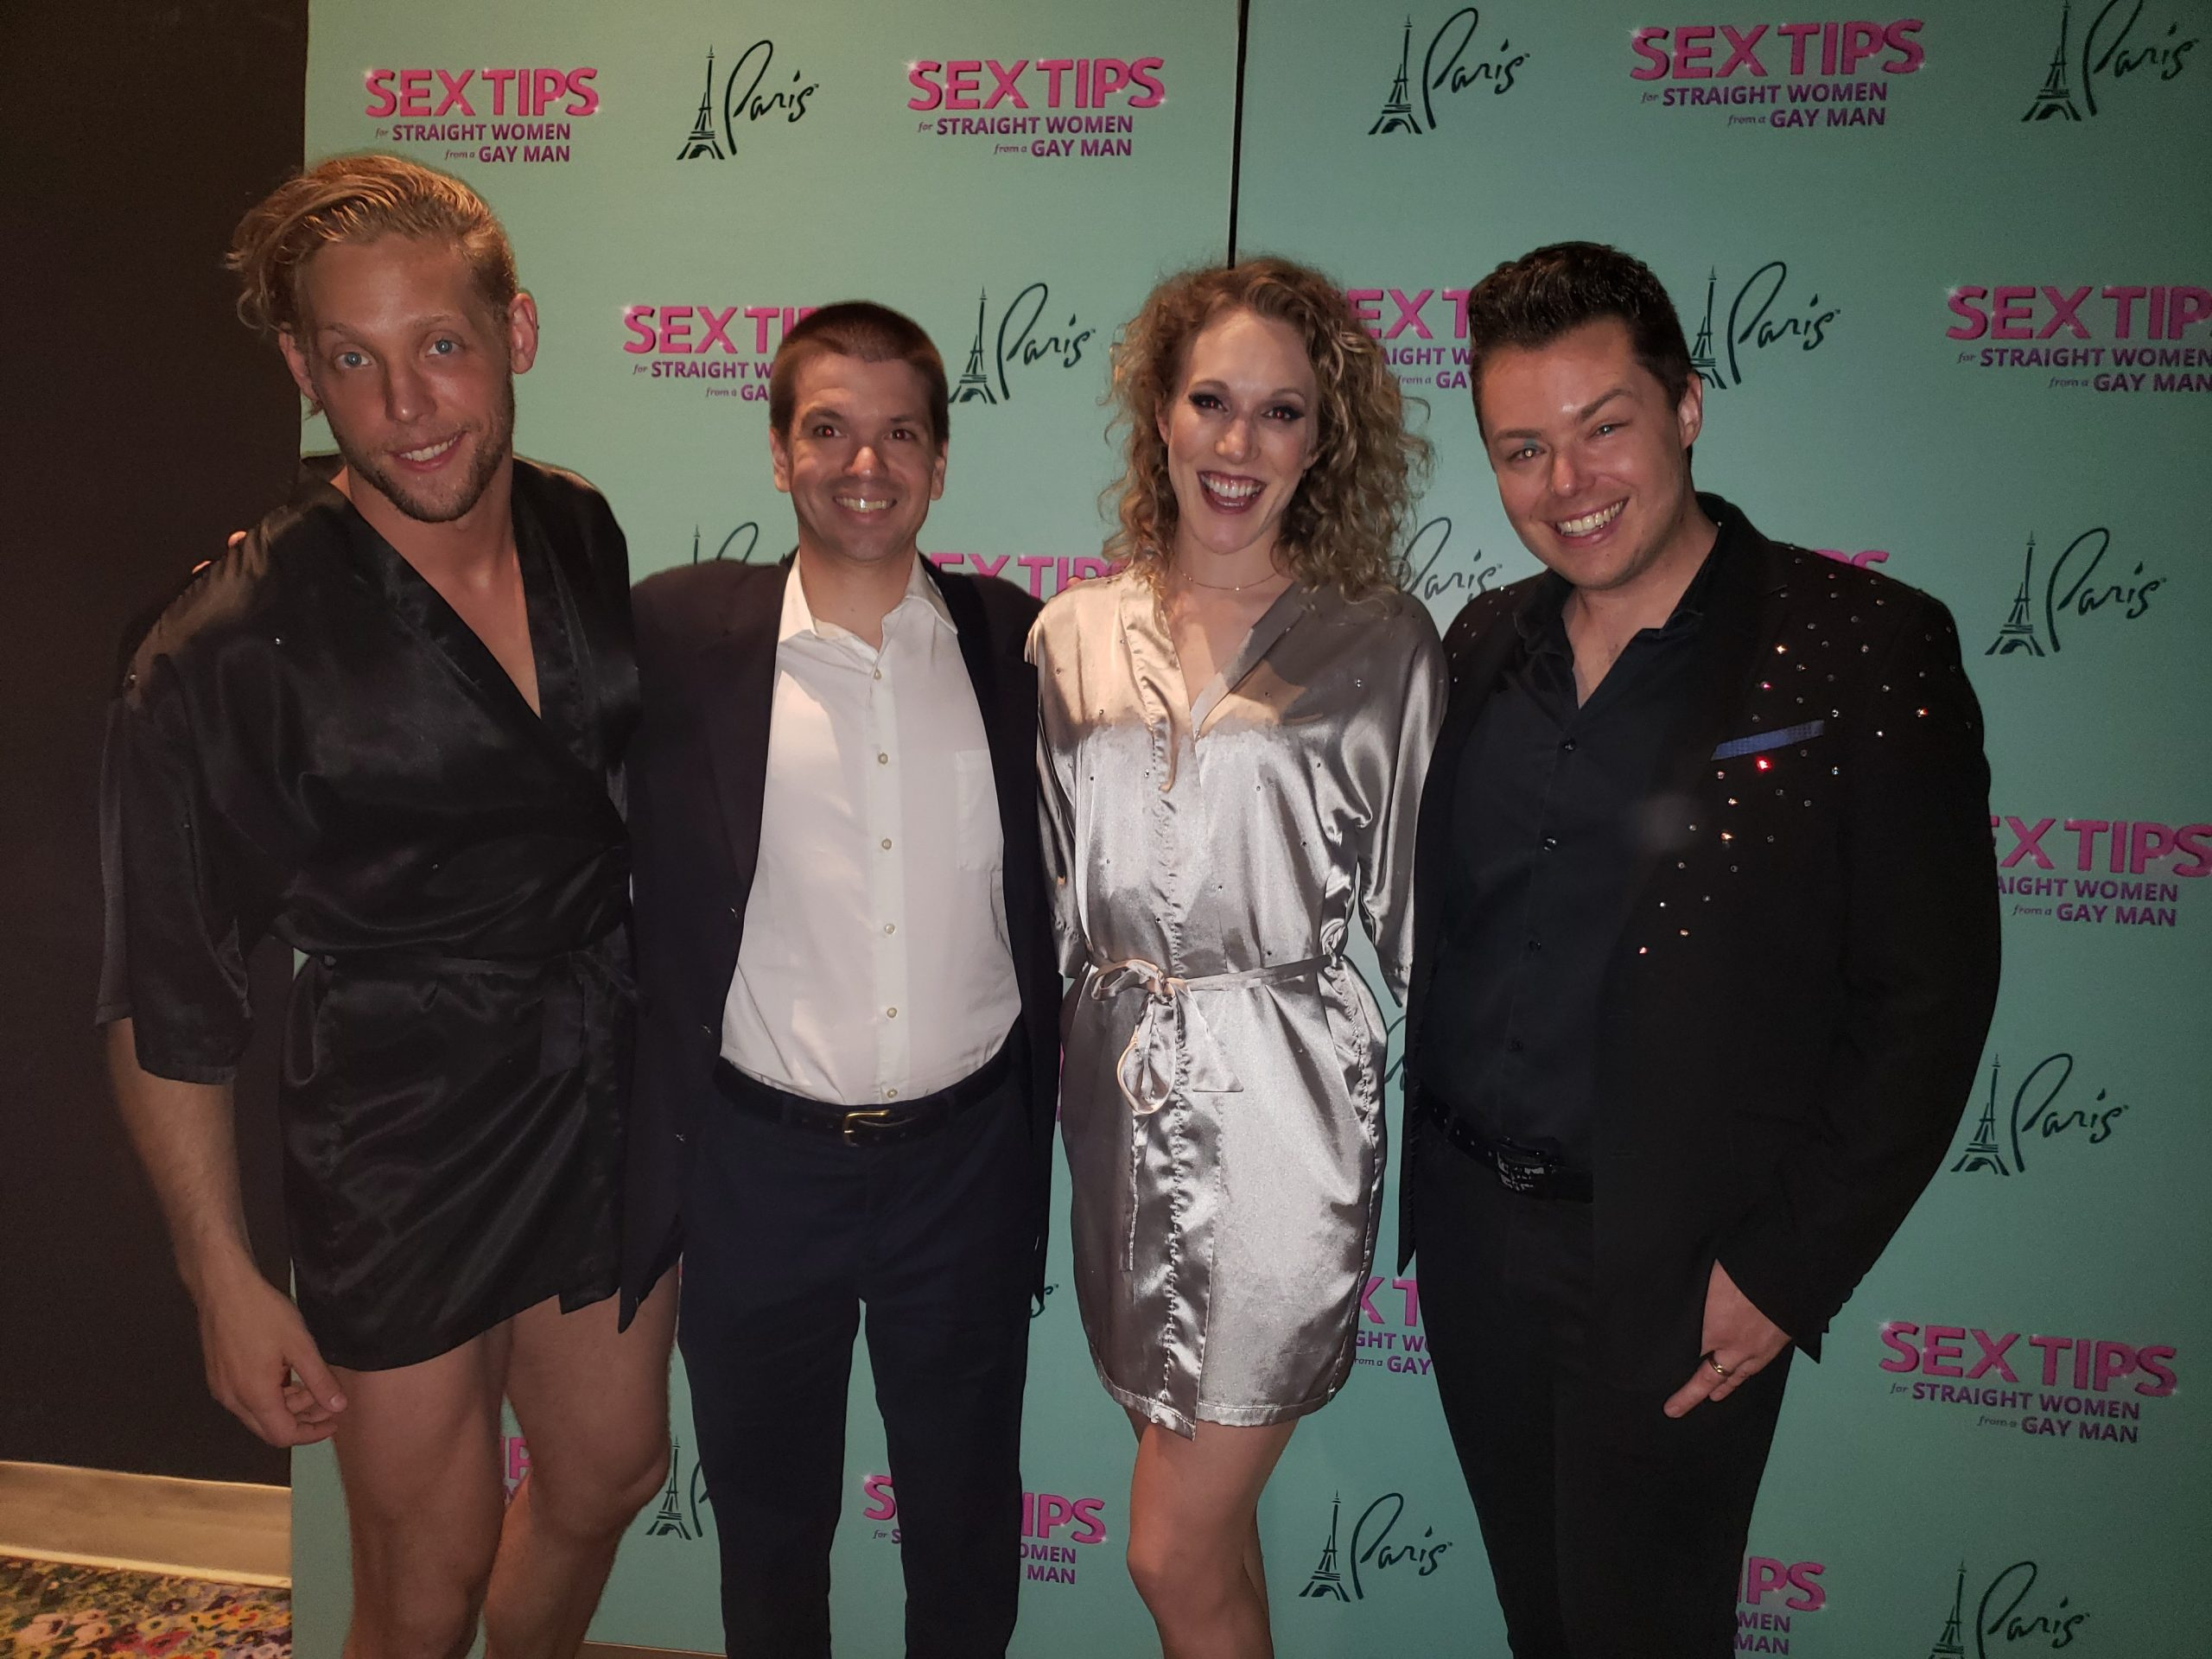 Chris Yandek, Sex Tips Las Vegas Show, Sex Tips Las Vegas Show, Mark Melton Jr, Makenzie Fly, Colin Cahill, Sex Tips for Straight Women From a Gay Man Las Vegas, Las Vegas 2019, Las Vegas Shows 2019, Sex Tips for Straight Women from a Gay Man Cast, Sex Tips Las Vegas Show 2019